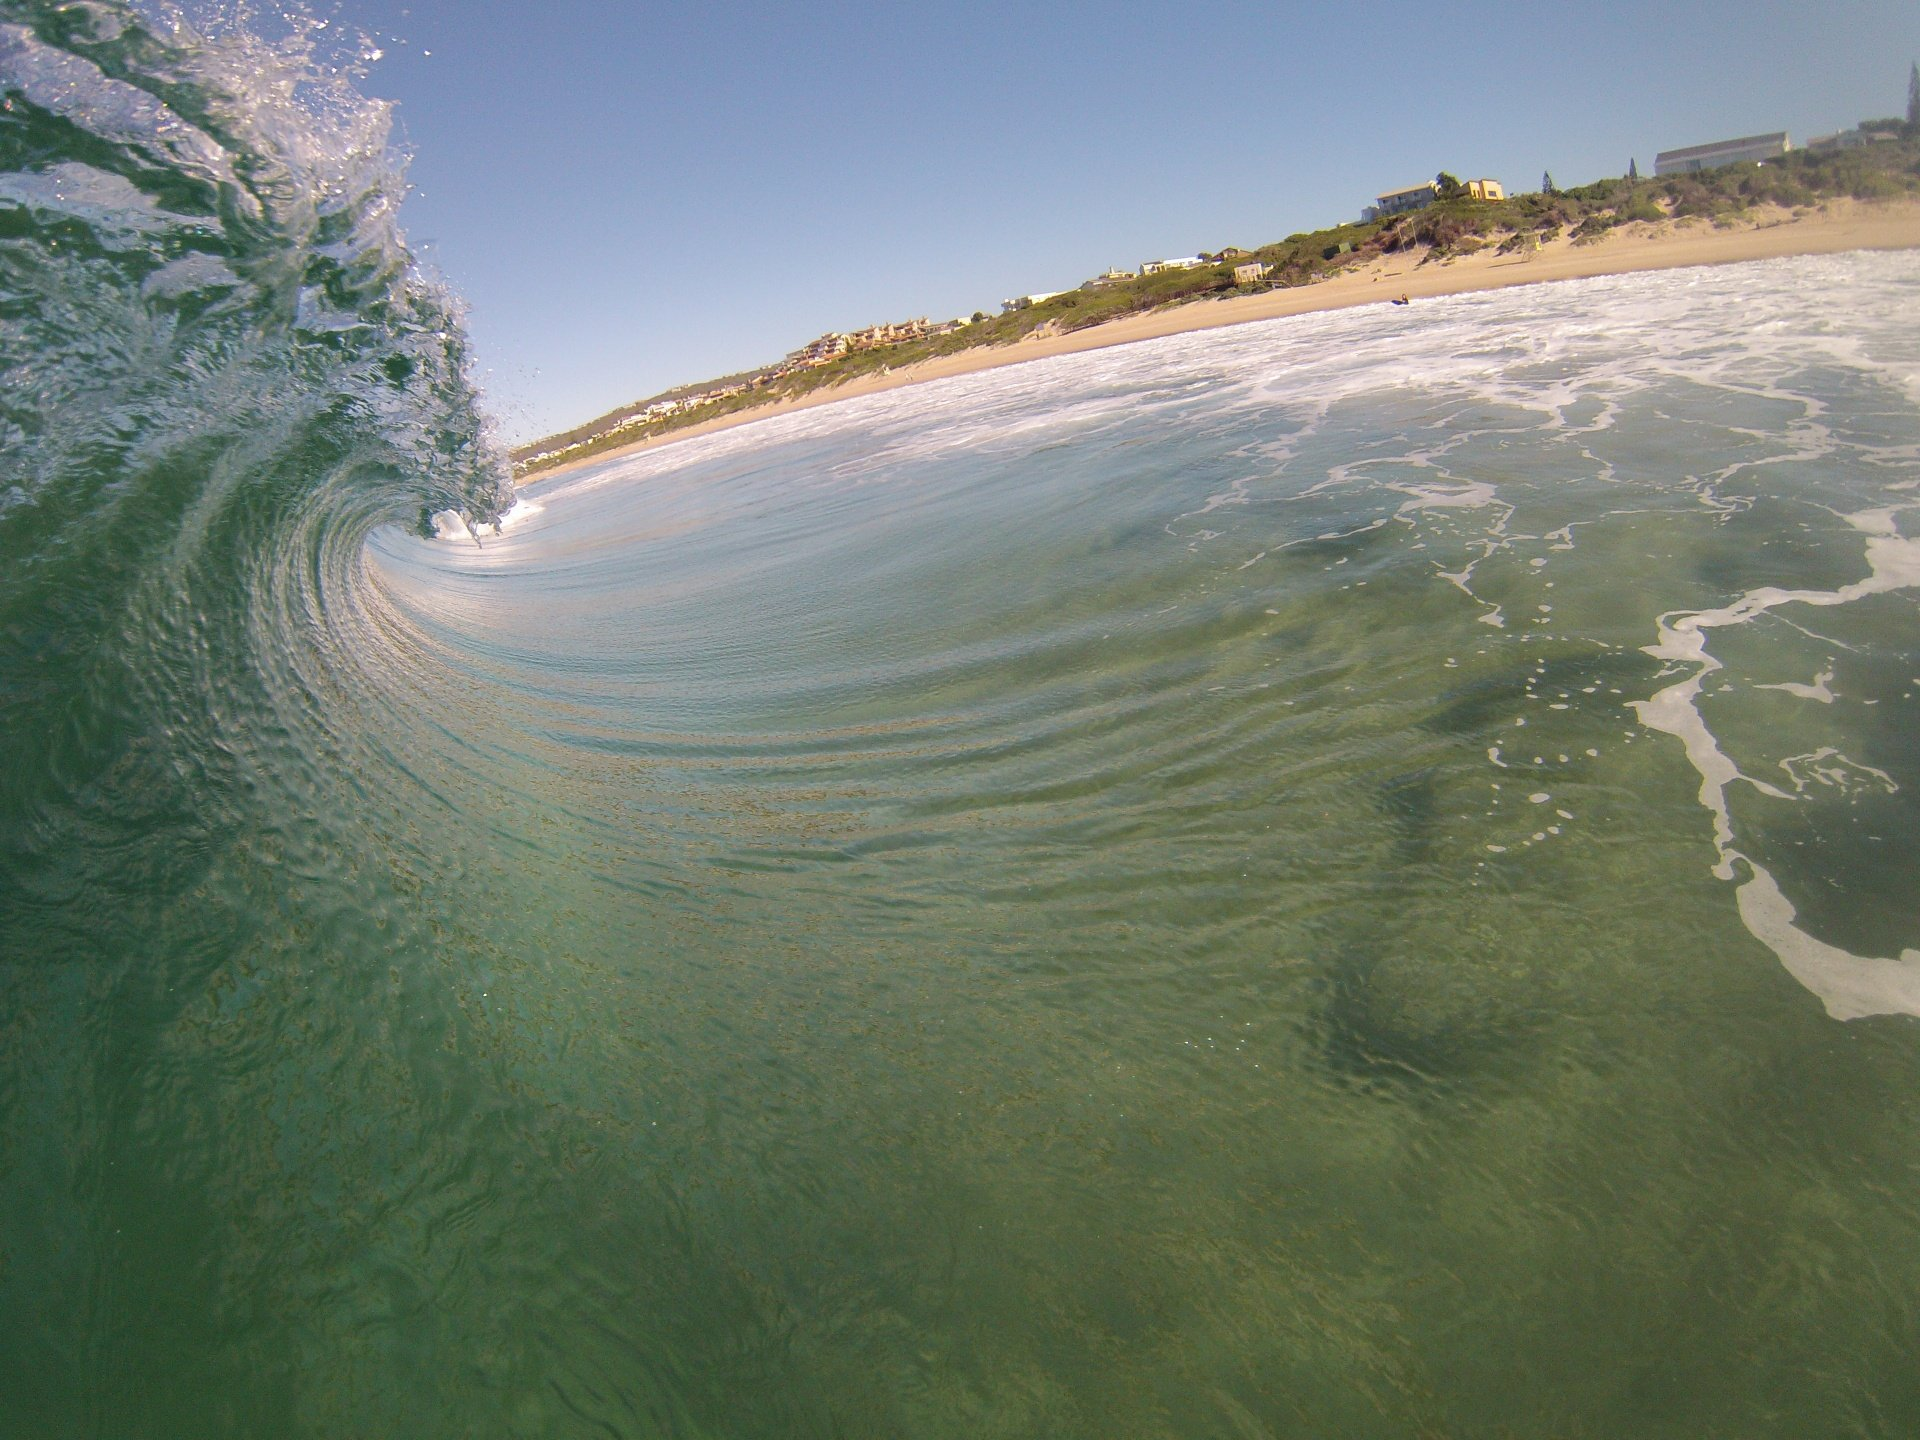 Jason Janks's photo of Plettenberg Bay